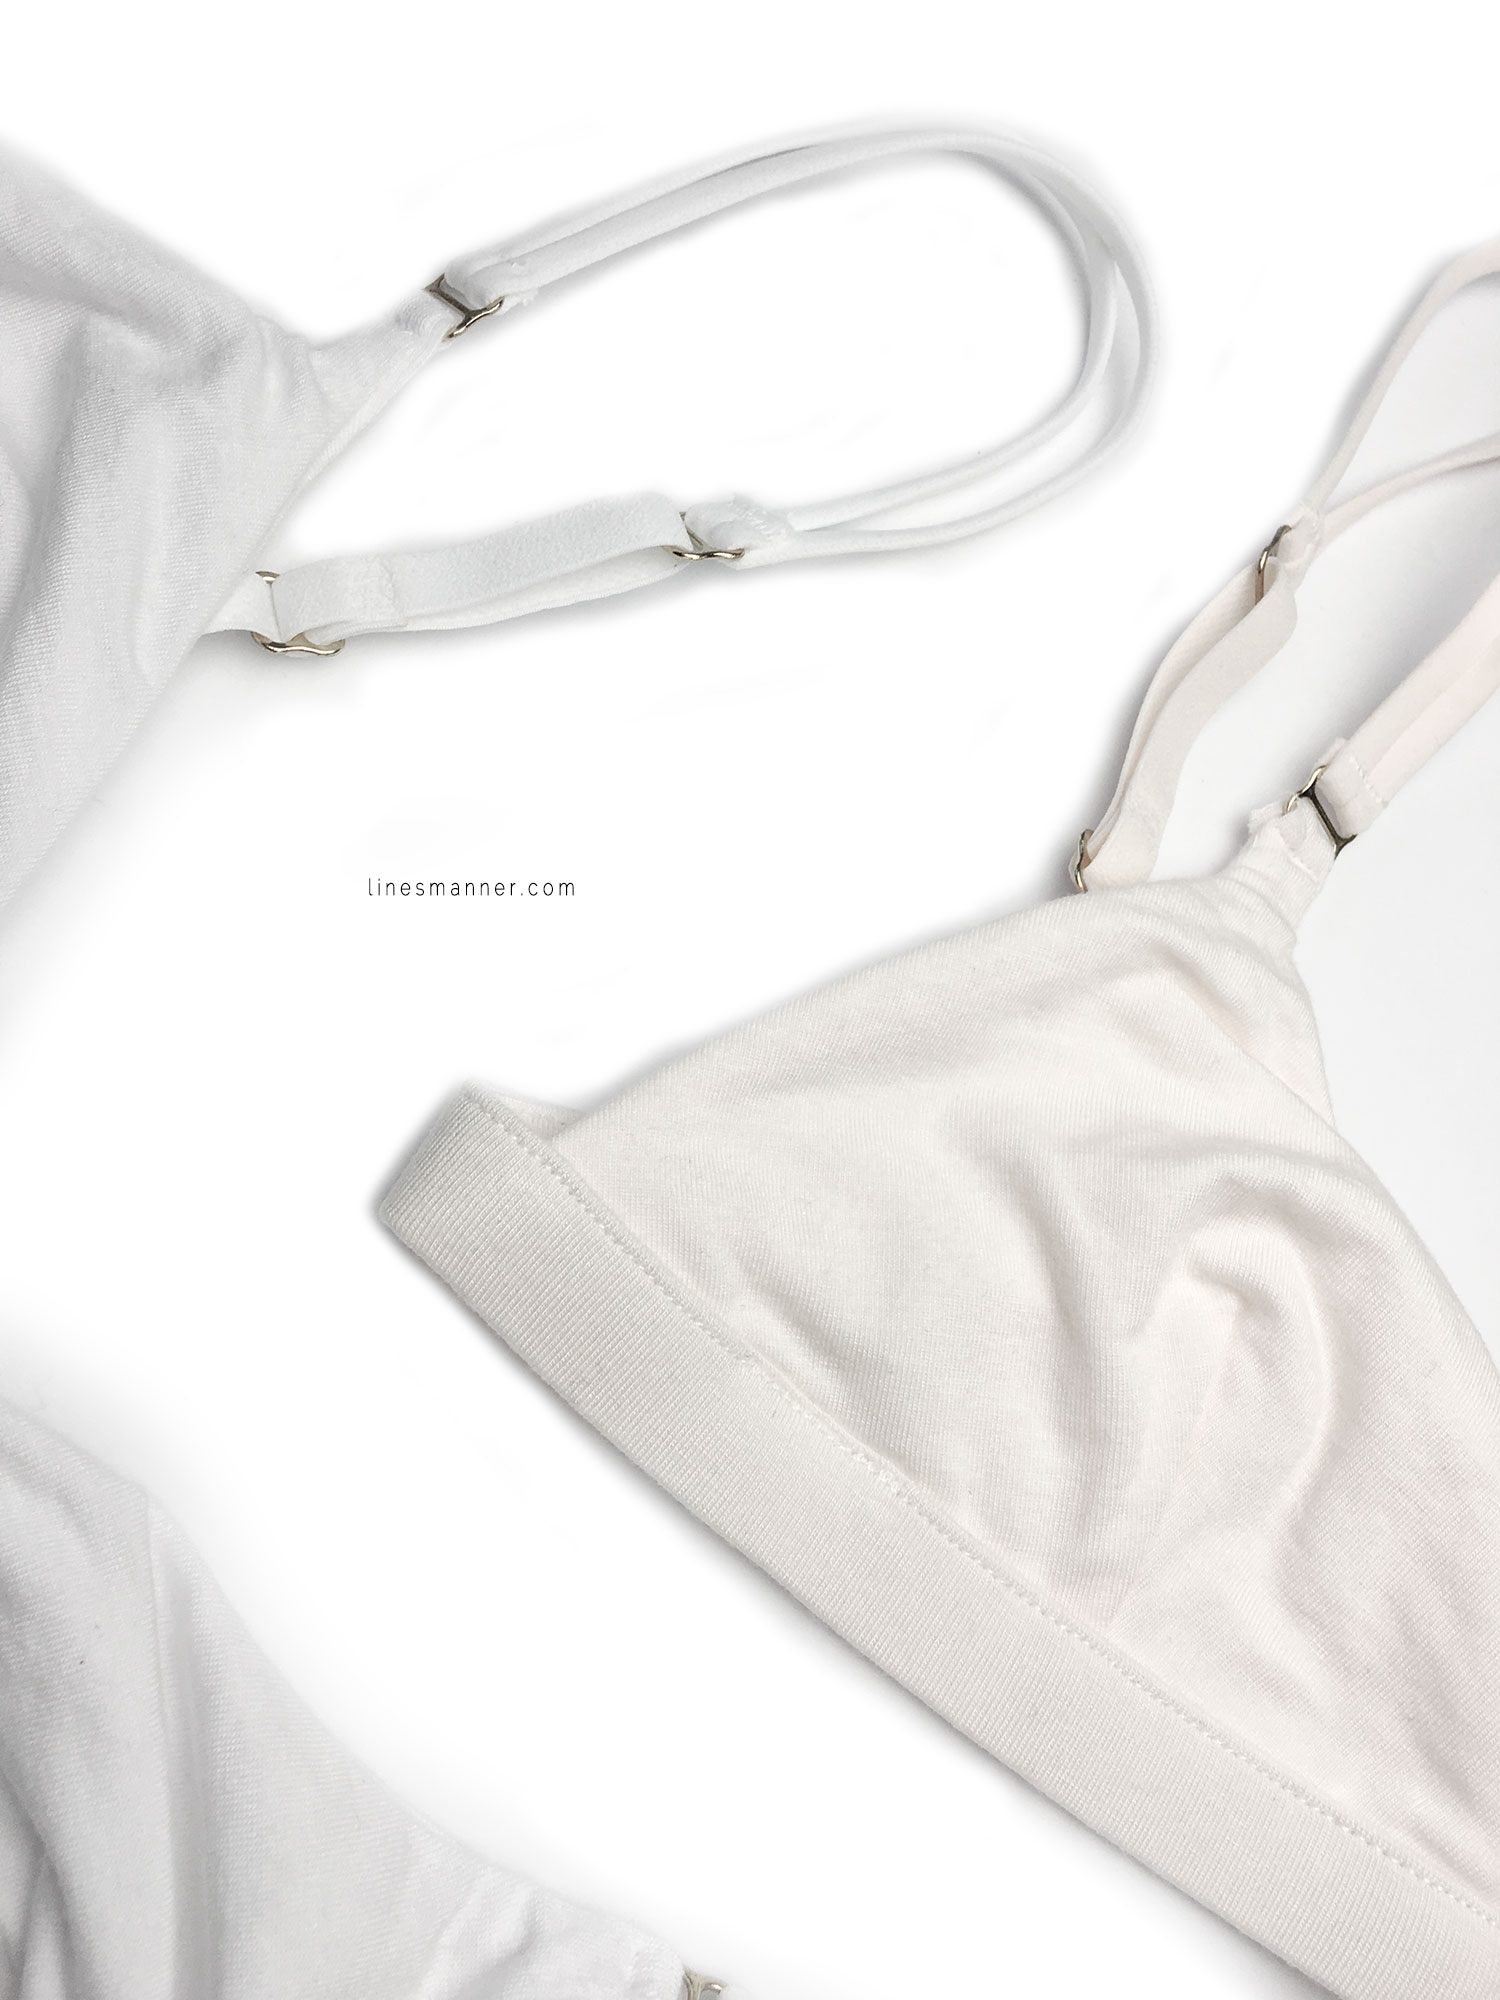 Lines-Manner-Simplicity-Sustainable-Quality-Less_is_More-Eco_friendly-Fashion-Underwear-Woron-Modal-Neutrals-5